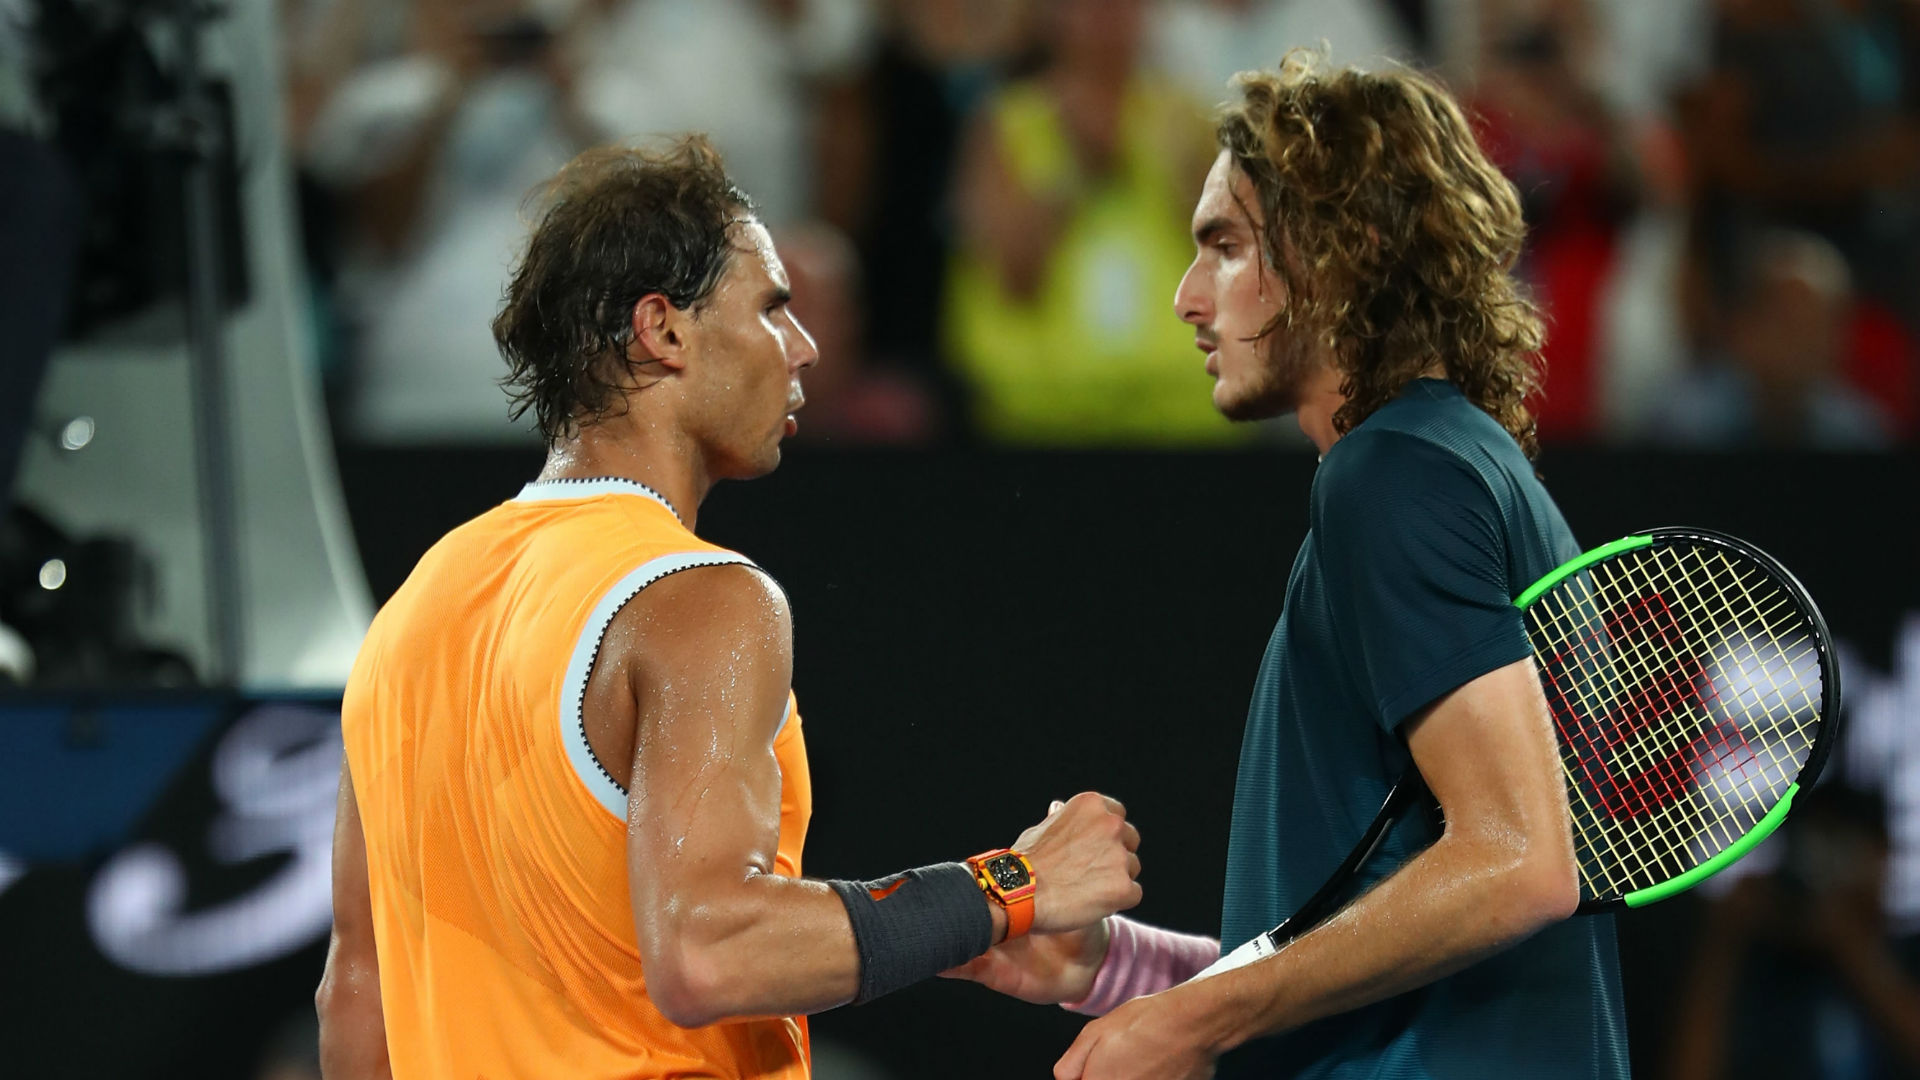 Nadal plays tennis from a different dimension, says stunned Tsitsipas